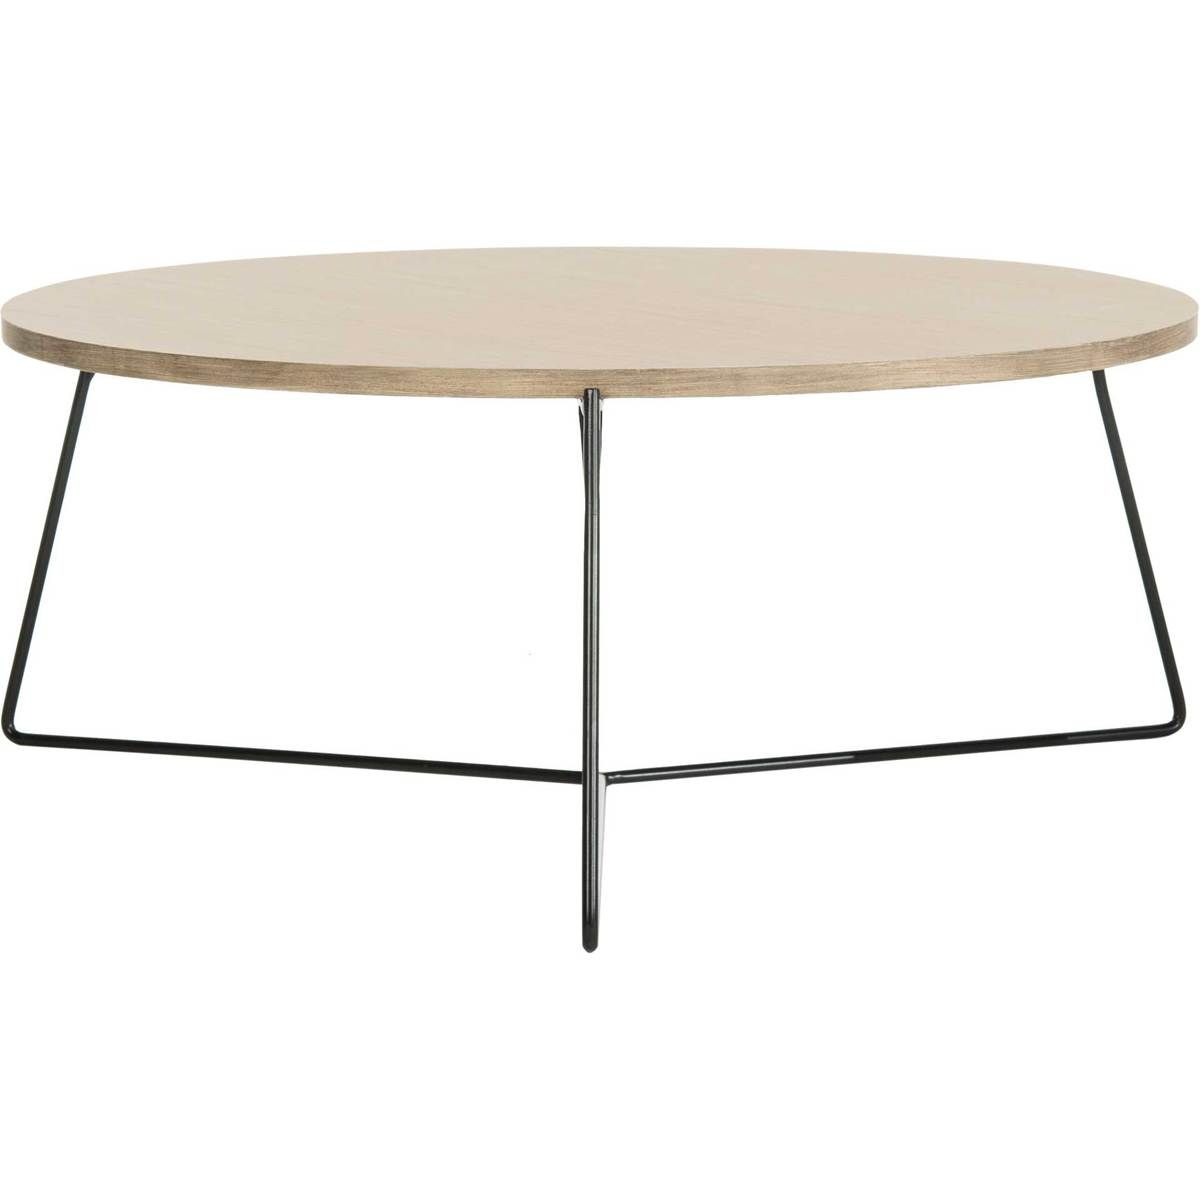 Max Wood Coffee Table Coffee Table Wood Coffee Table Contemporary Coffee Table [ 1200 x 1200 Pixel ]